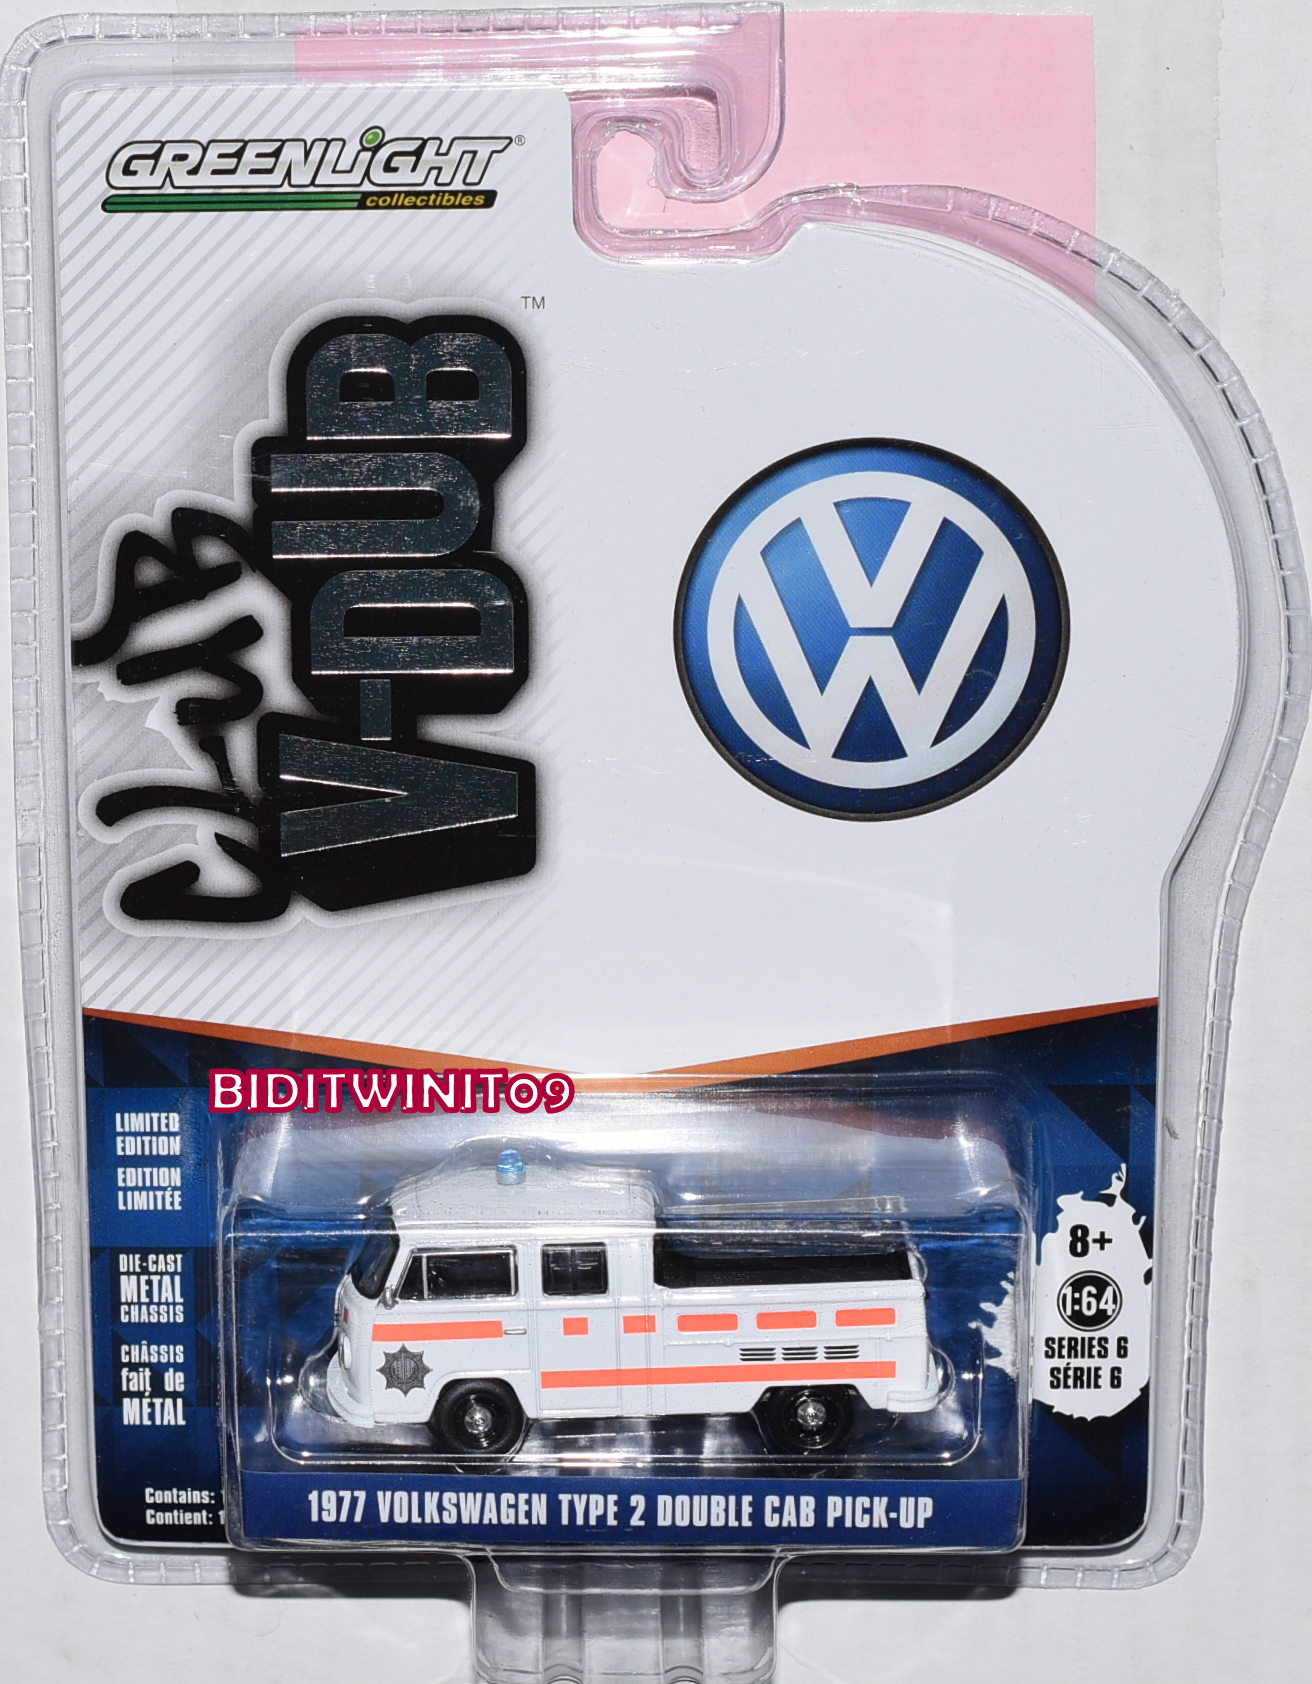 GREENLIGHT CLUB V-DUB 2018 SERIES 6 1977 VOLKSWAGEN TYPE 2 DOUBLE CAB PICK-UP